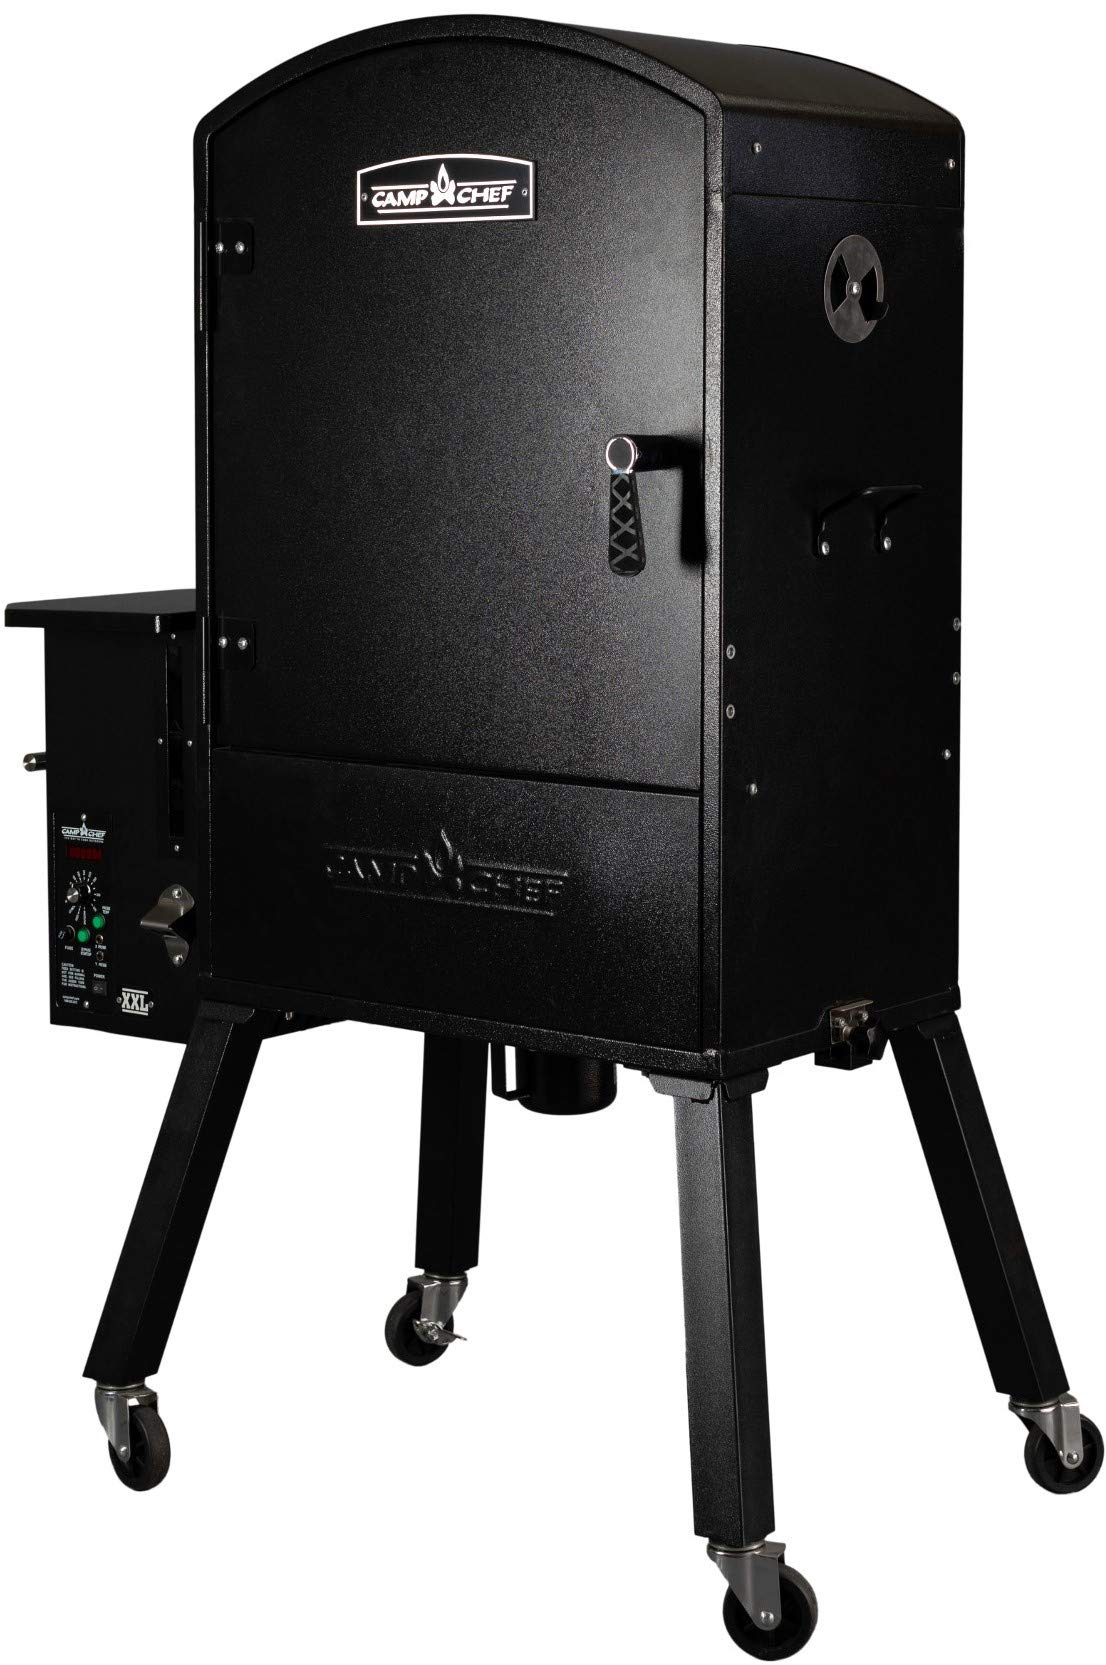 Camp Chef XXL Vertical Pellet Grill and Smoker (PGVXXL) - Smart Smoke Technology - Patented Ash Cleanout - Digital Display - Pellet Purge System by Camp Chef (Image #4)